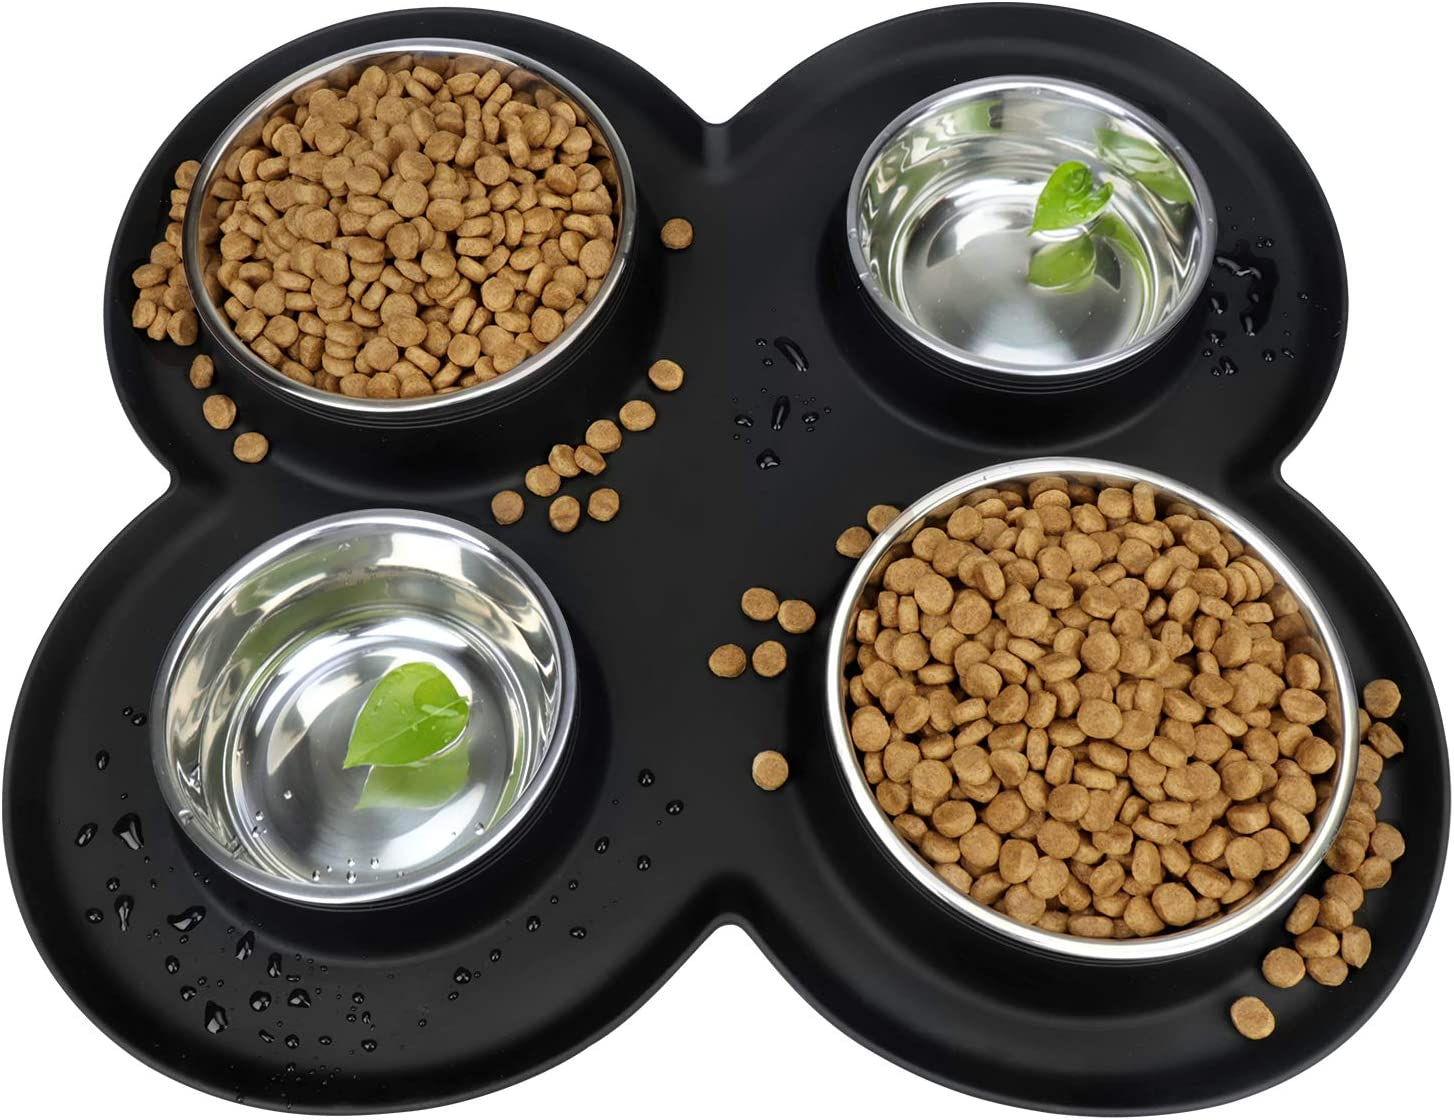 WINSEE 4 Litter Dogs Cats Bowls Feeder Stainless Steel with Safety Silicone Mat Set for Small Medium Dogs, No Spill Non Skid, Food & Water Bowls for Multiple Pets Black, 80 Oz